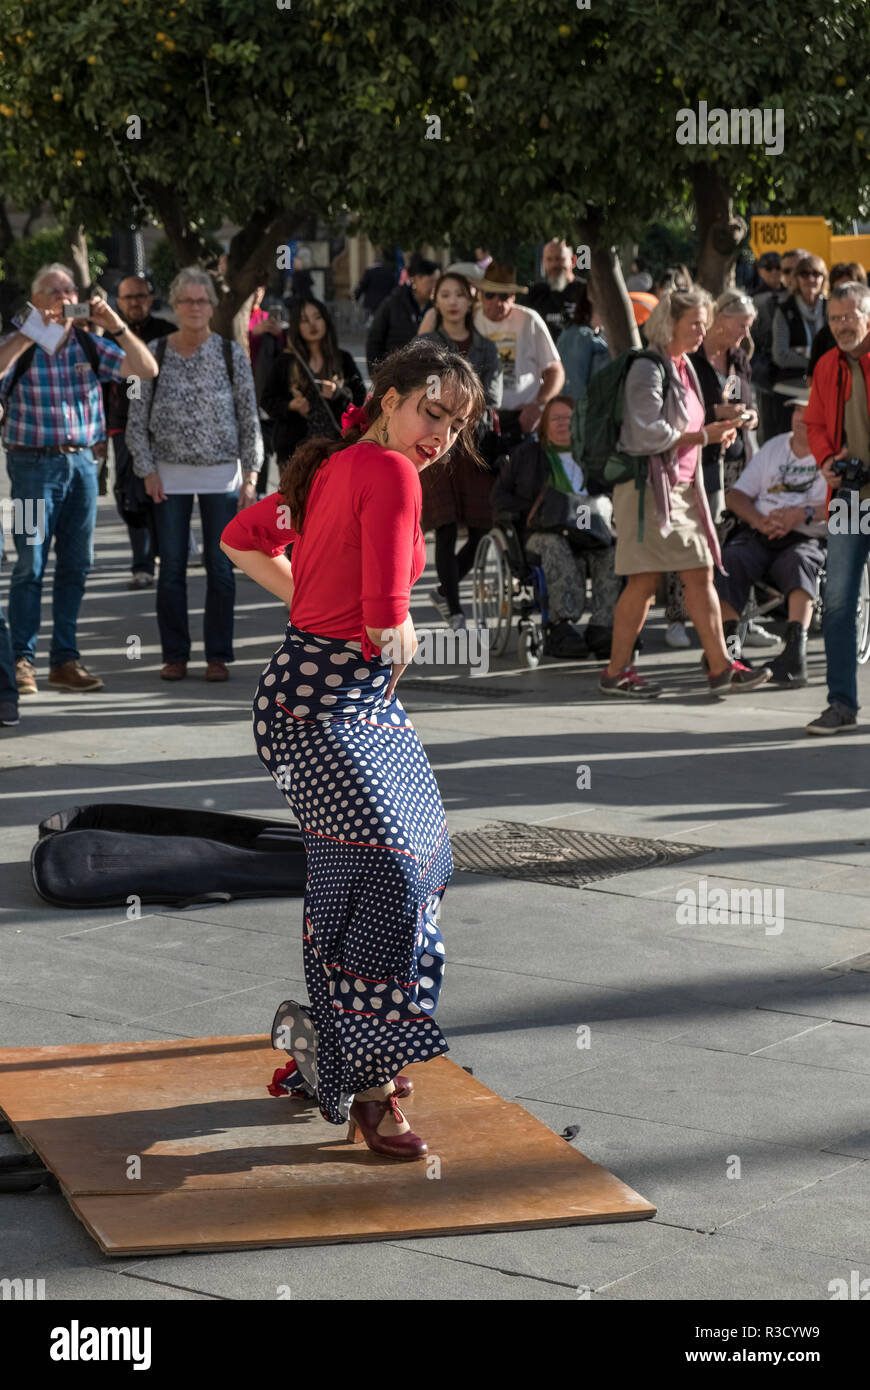 A young woman flamenco dancer performs for tourists on a street in Seville, Andalucia, Spain - Stock Image